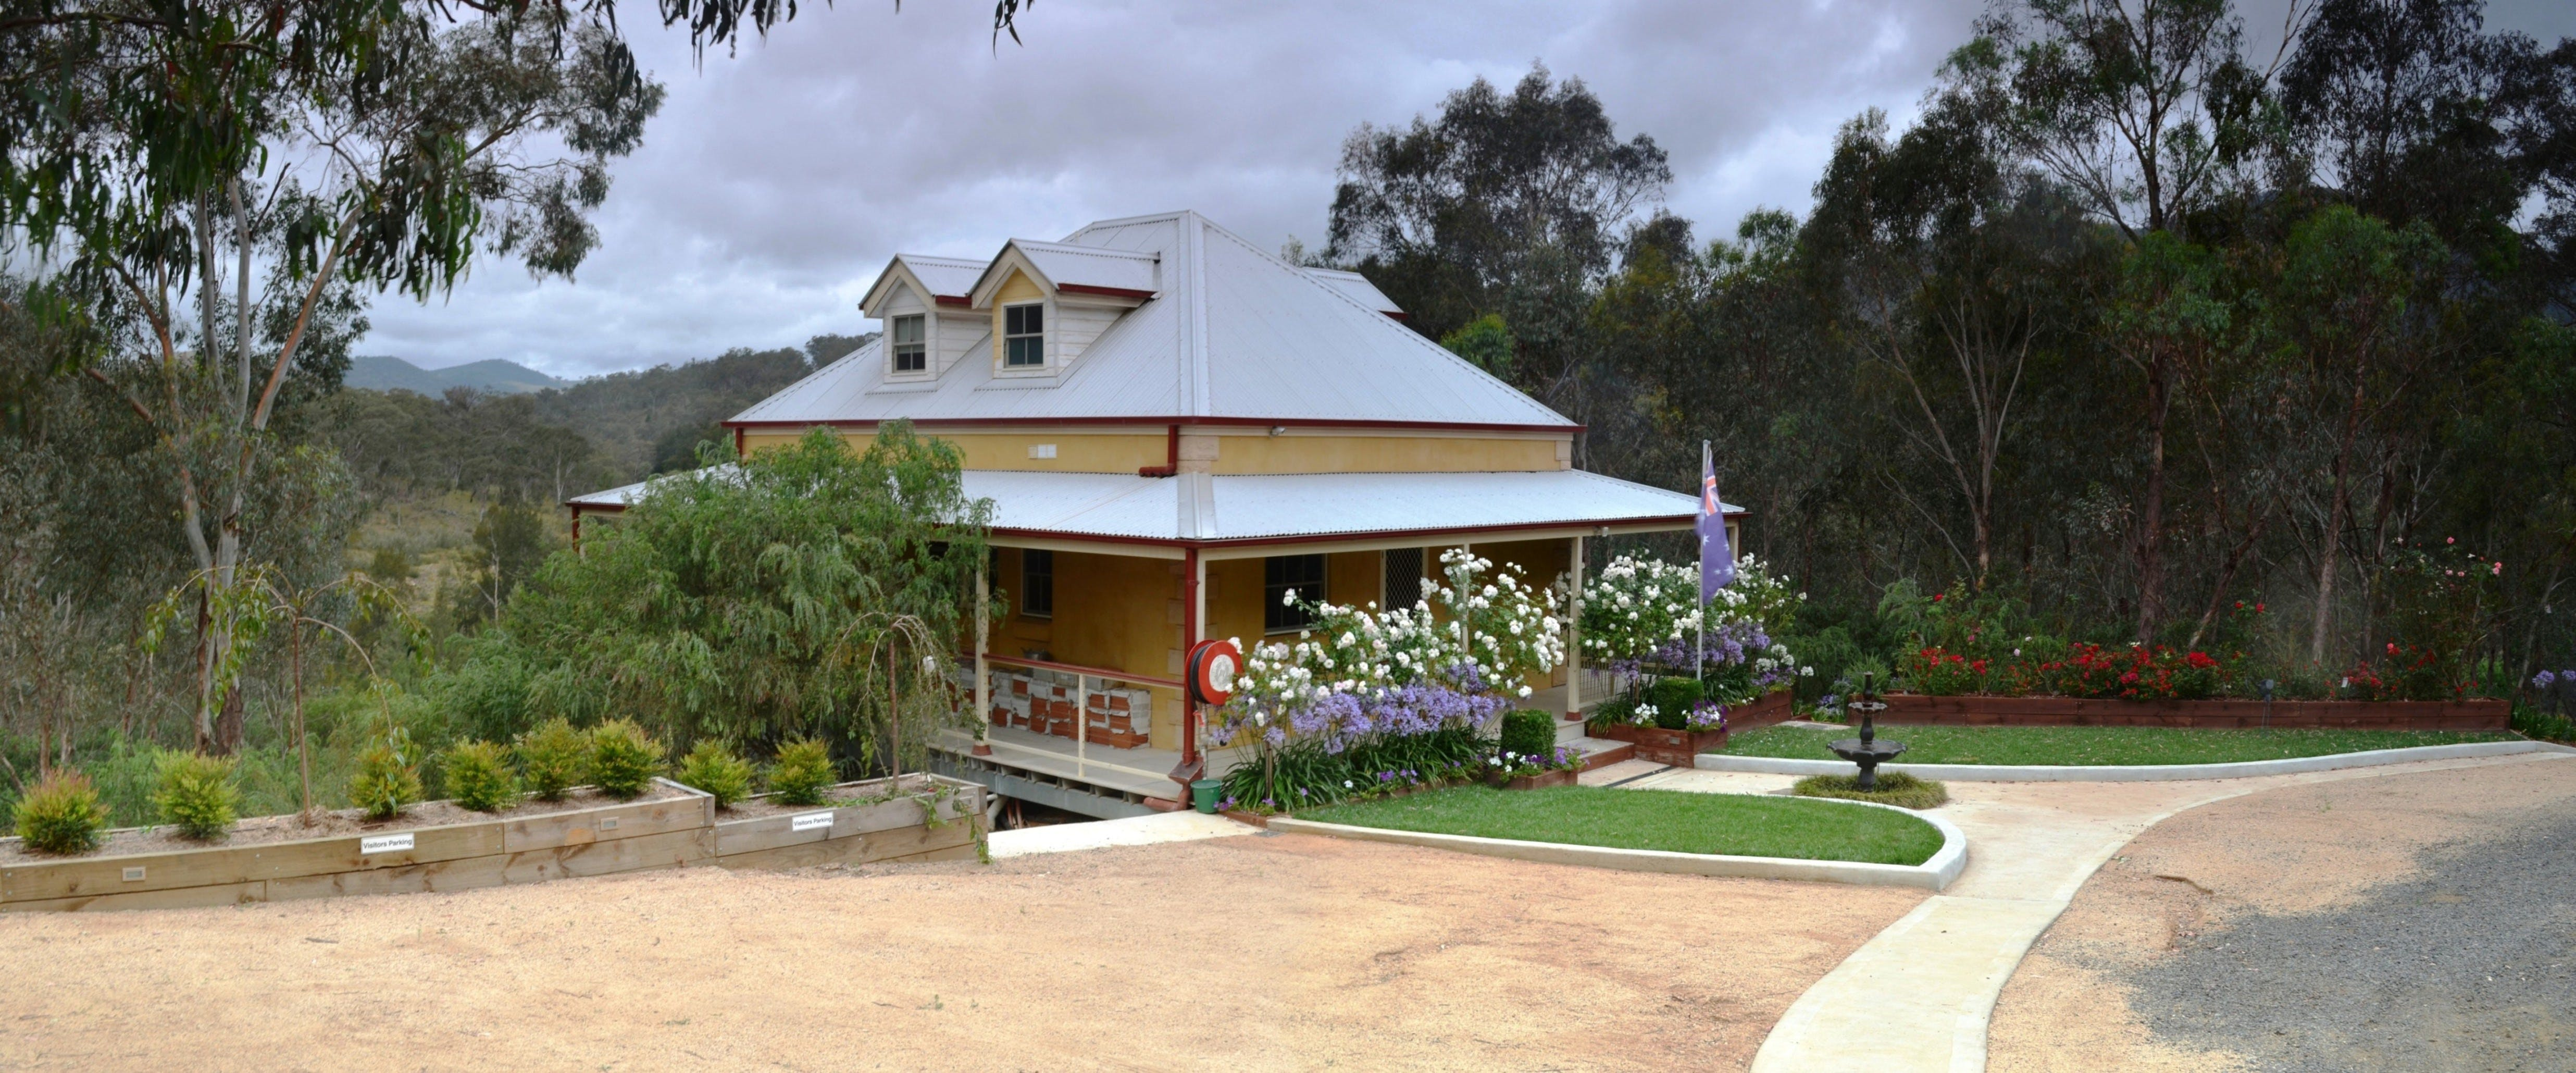 Tanwarra Lodge Bed and Breakfast - Tourism Adelaide